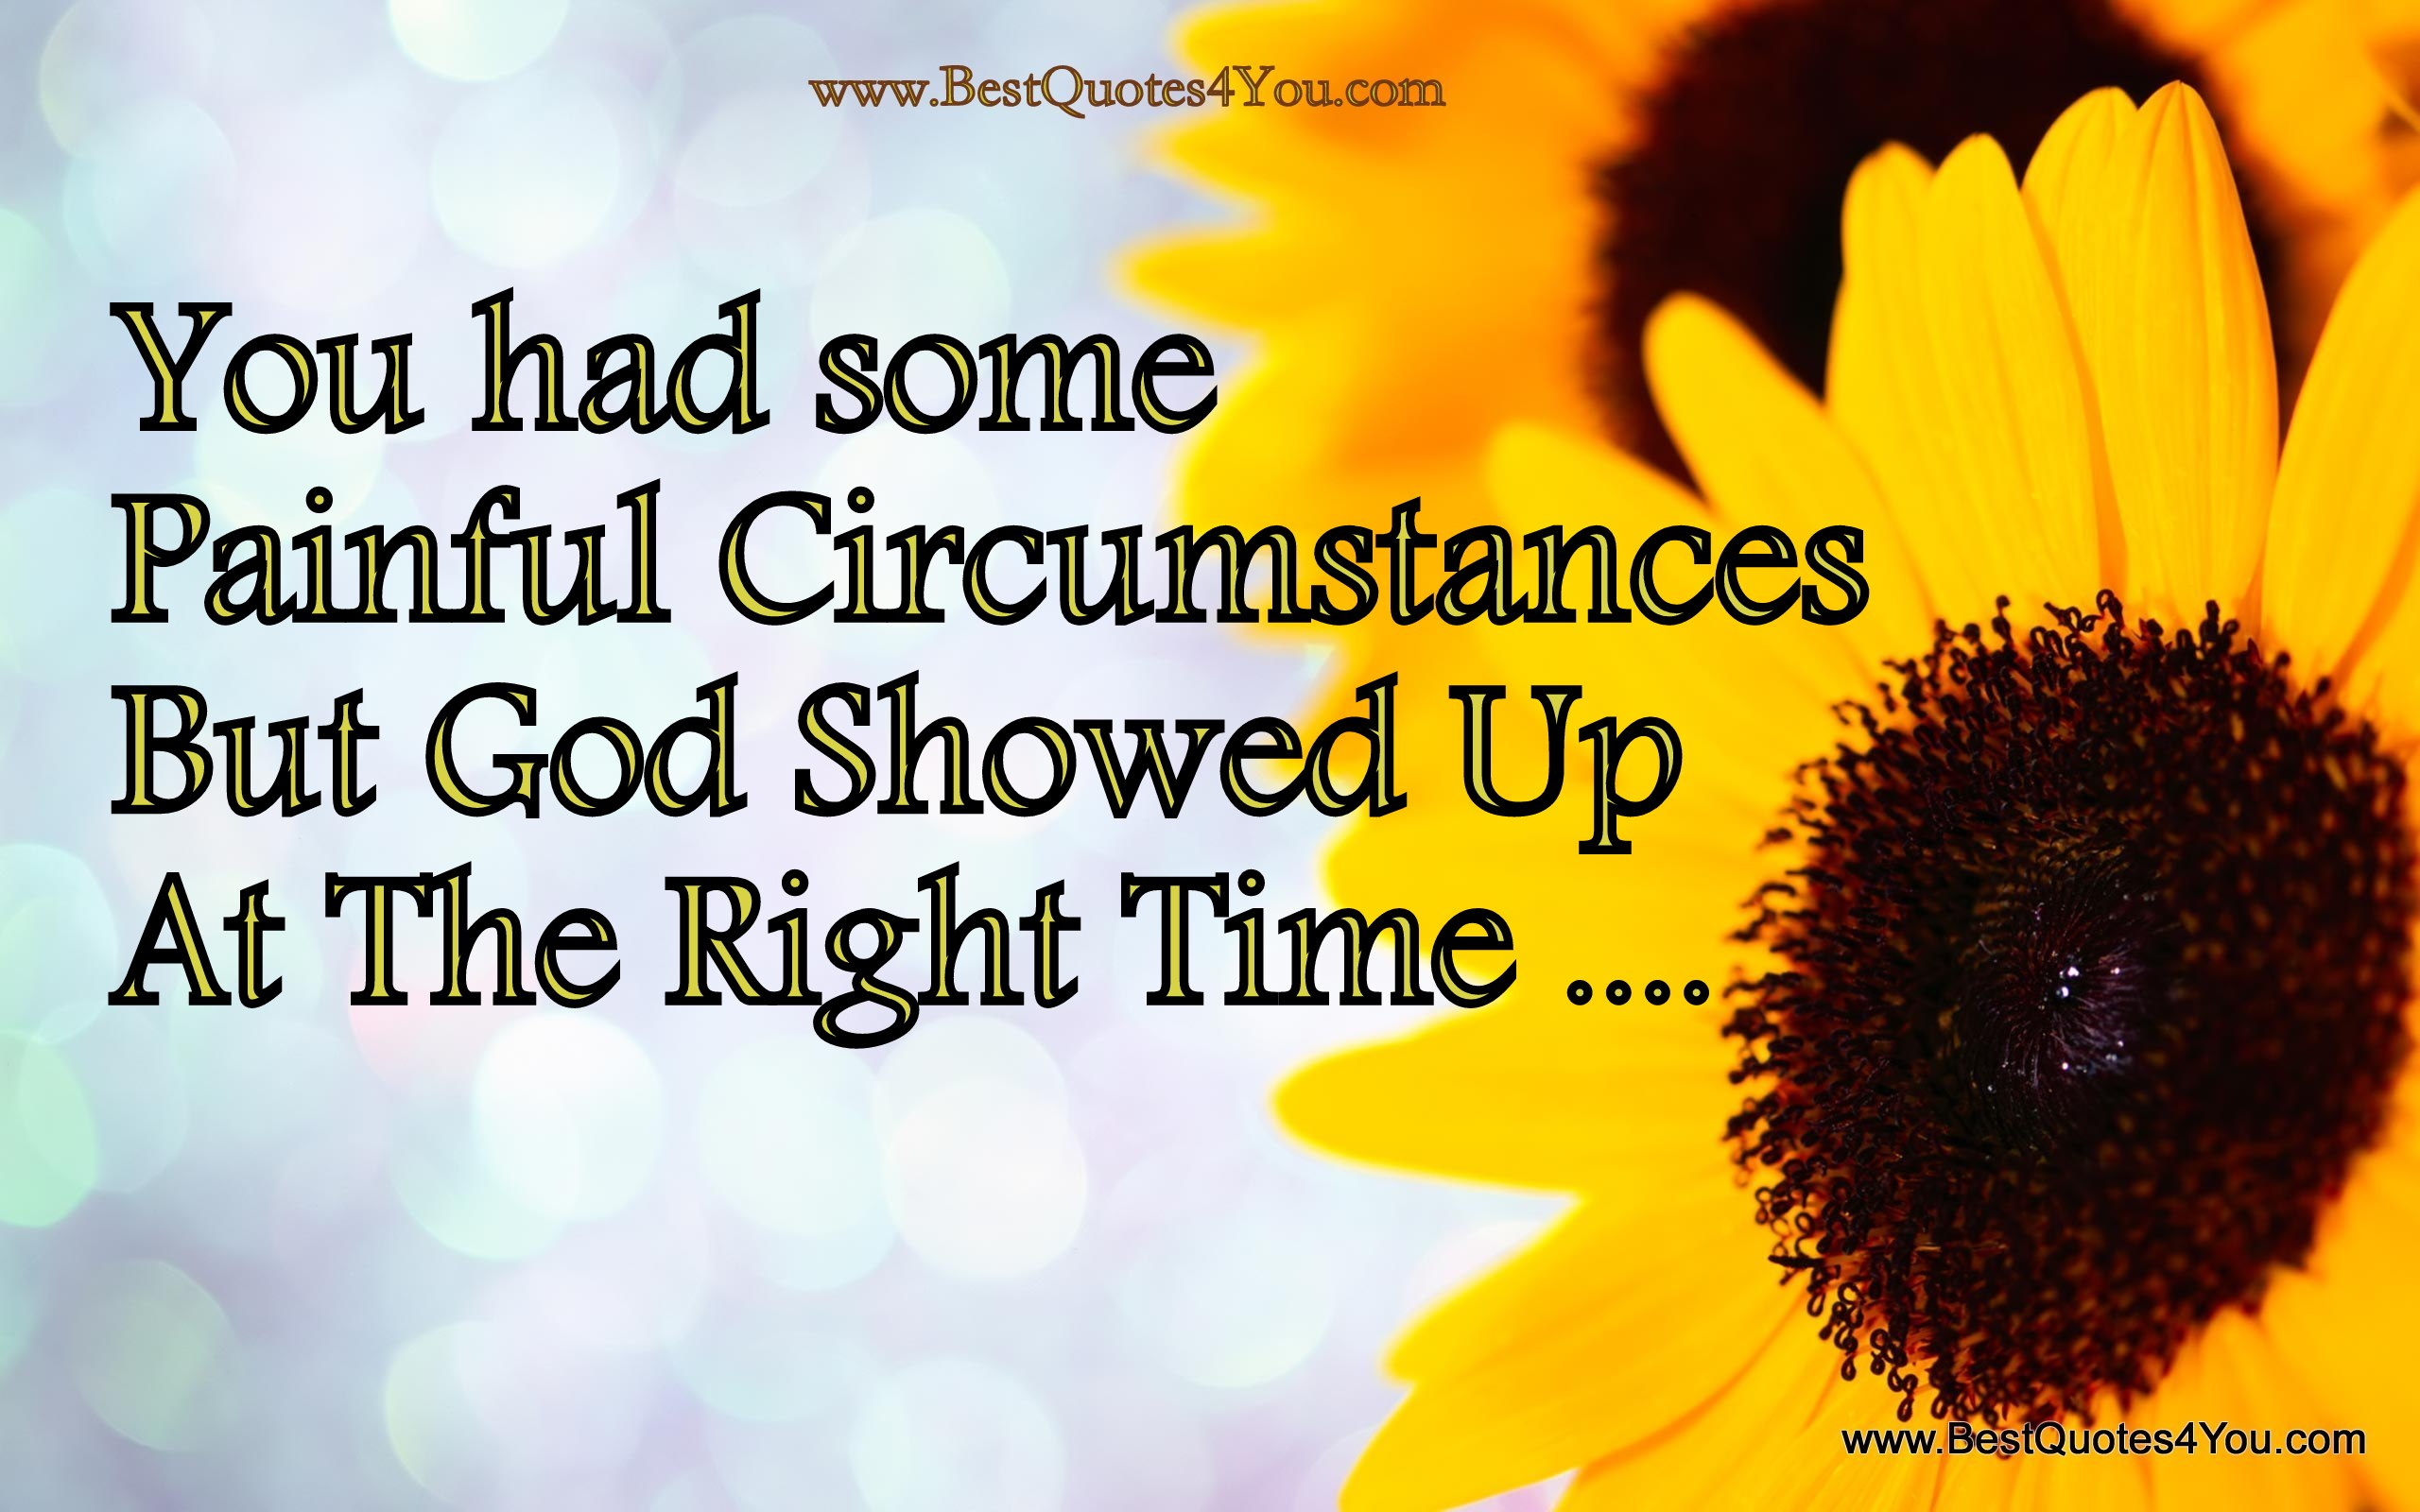 you had some painful circumstances but god showed up at the right time